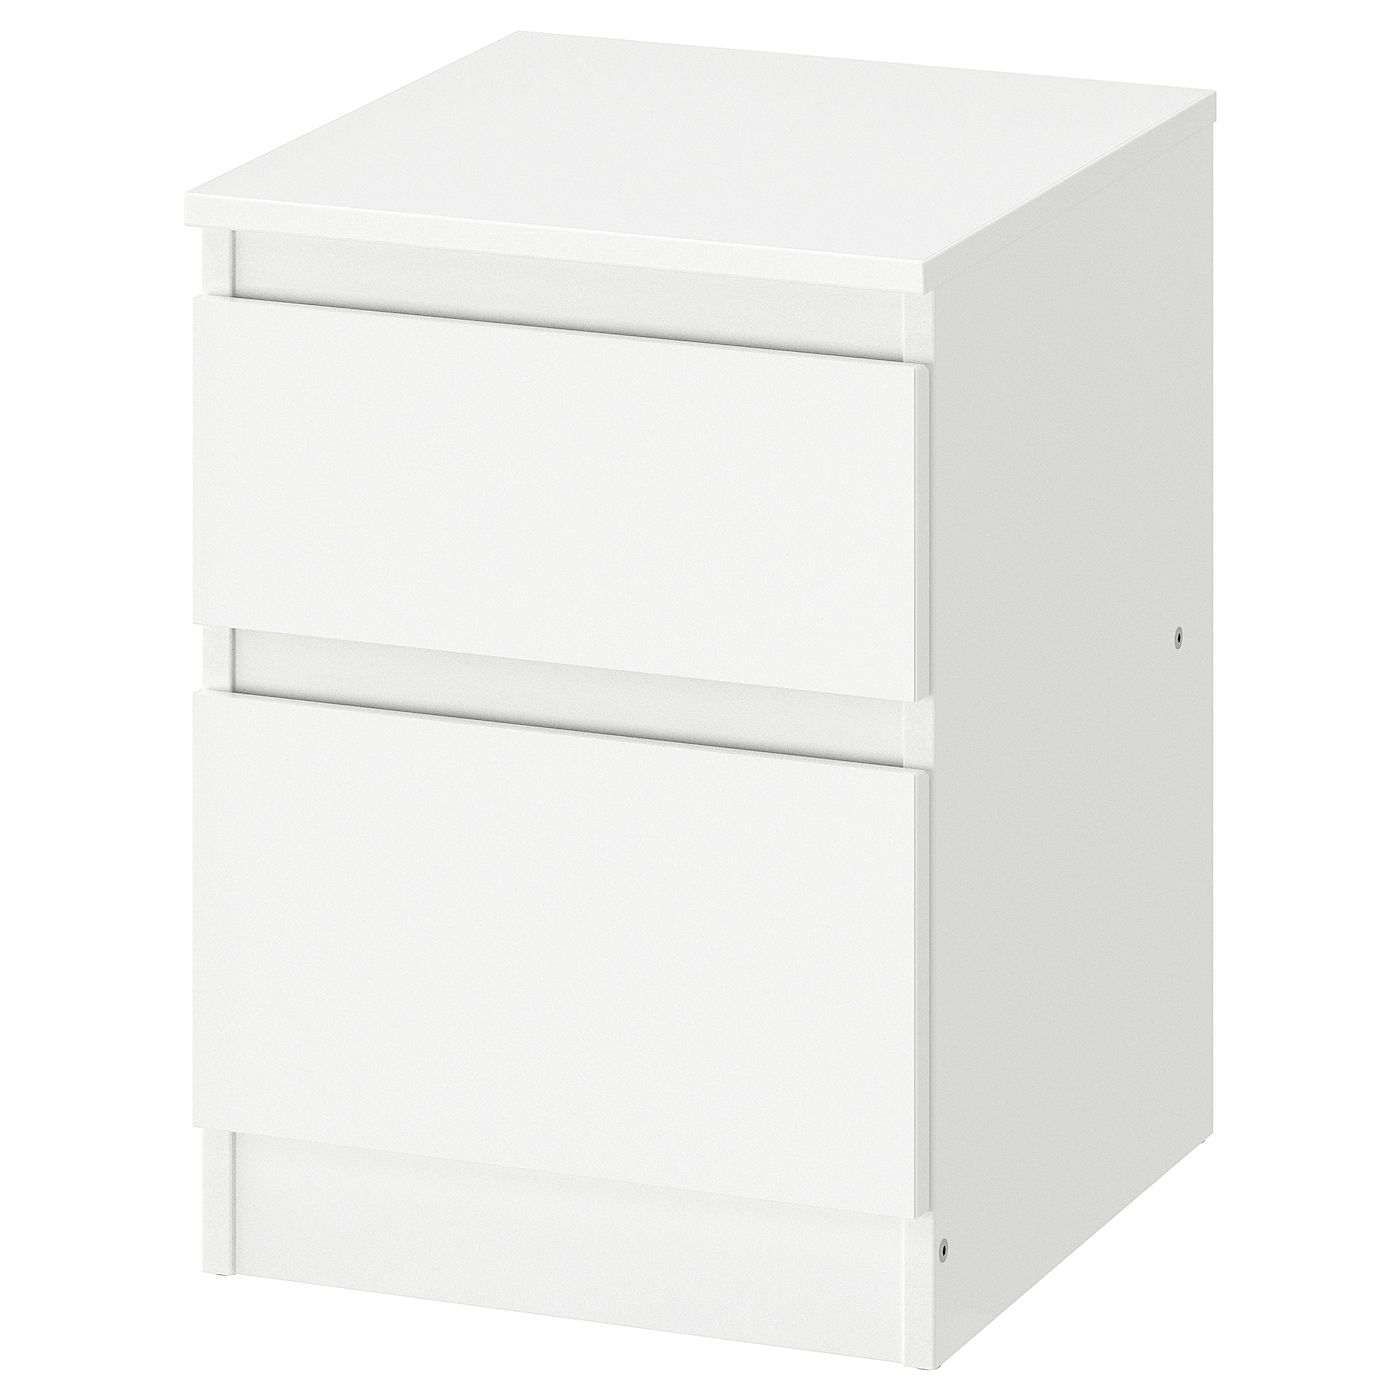 Kullen Ladekast 2 Lades Wit 35x49 Cm Ikea In 2020 Ikea Bedside Table Drawers